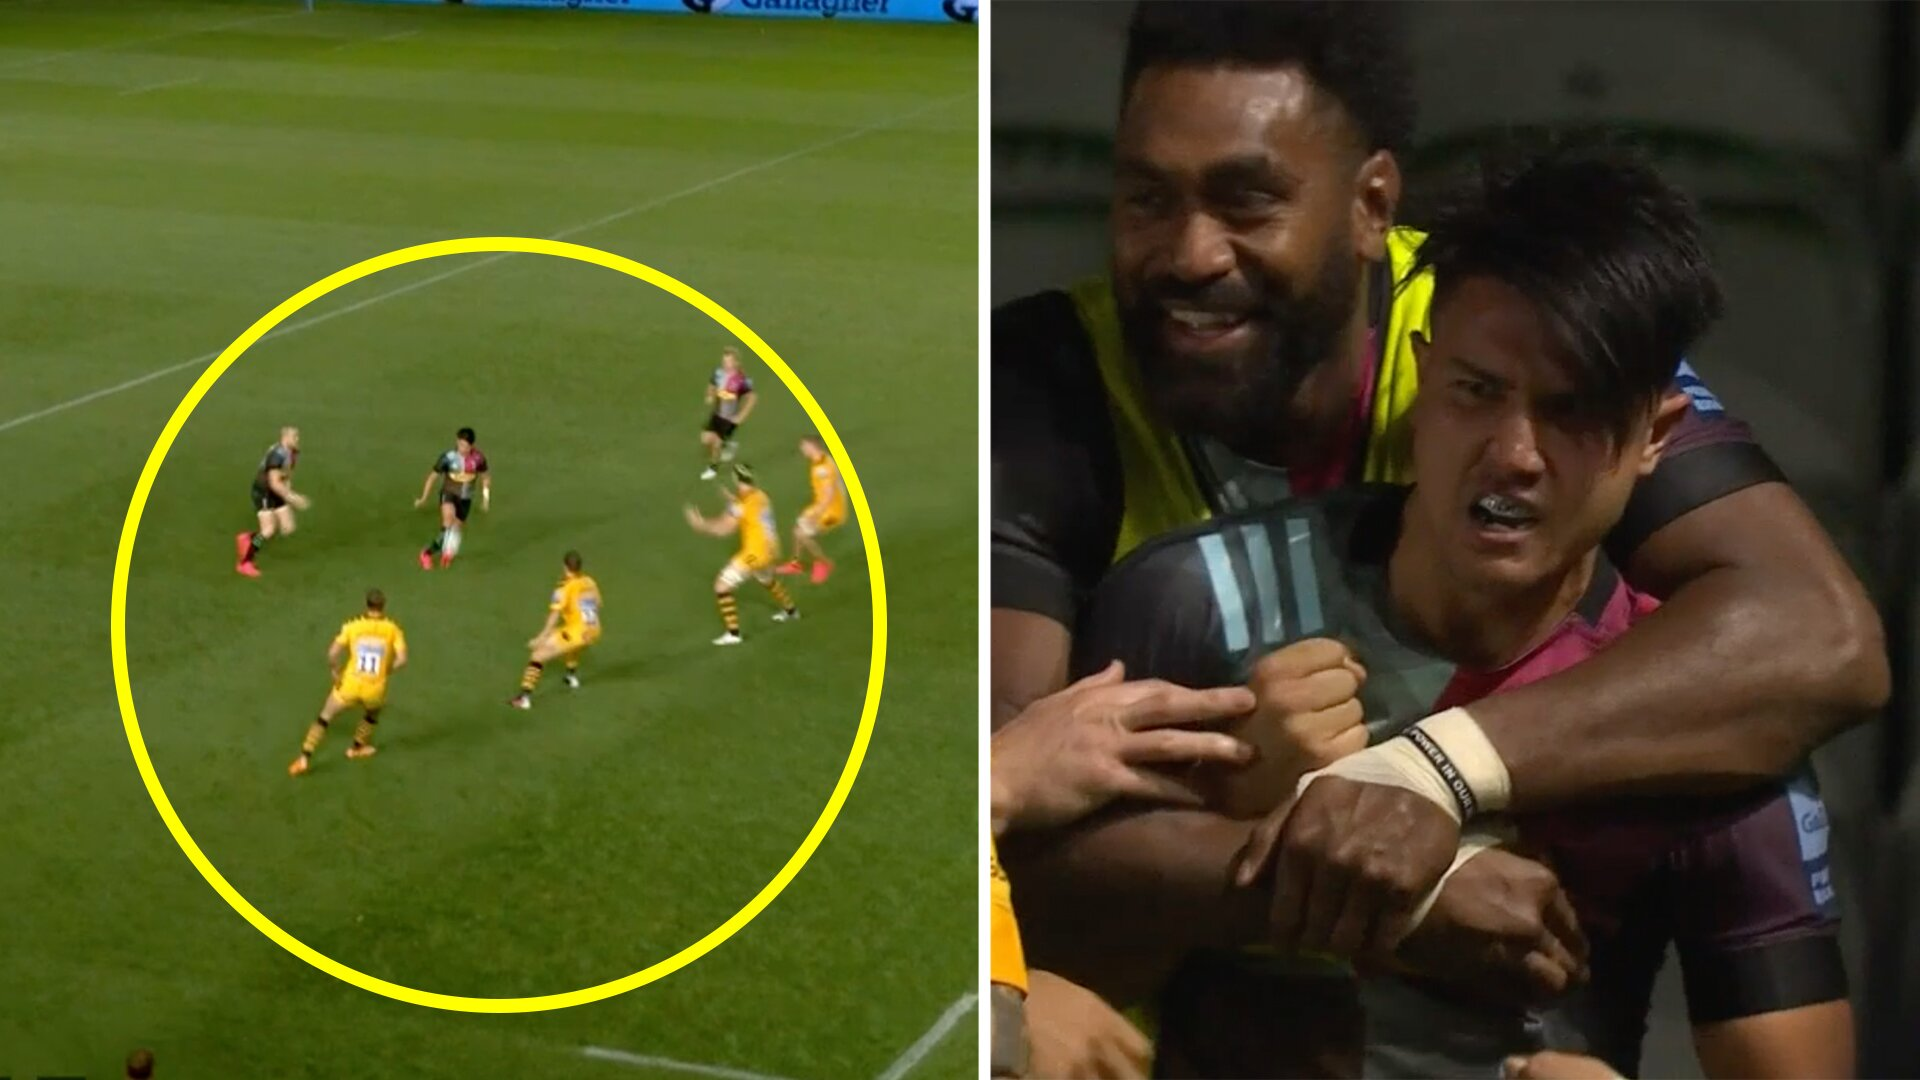 Marcus Smith is now unquestionable England starter after wonder try in last night's Premiership clash